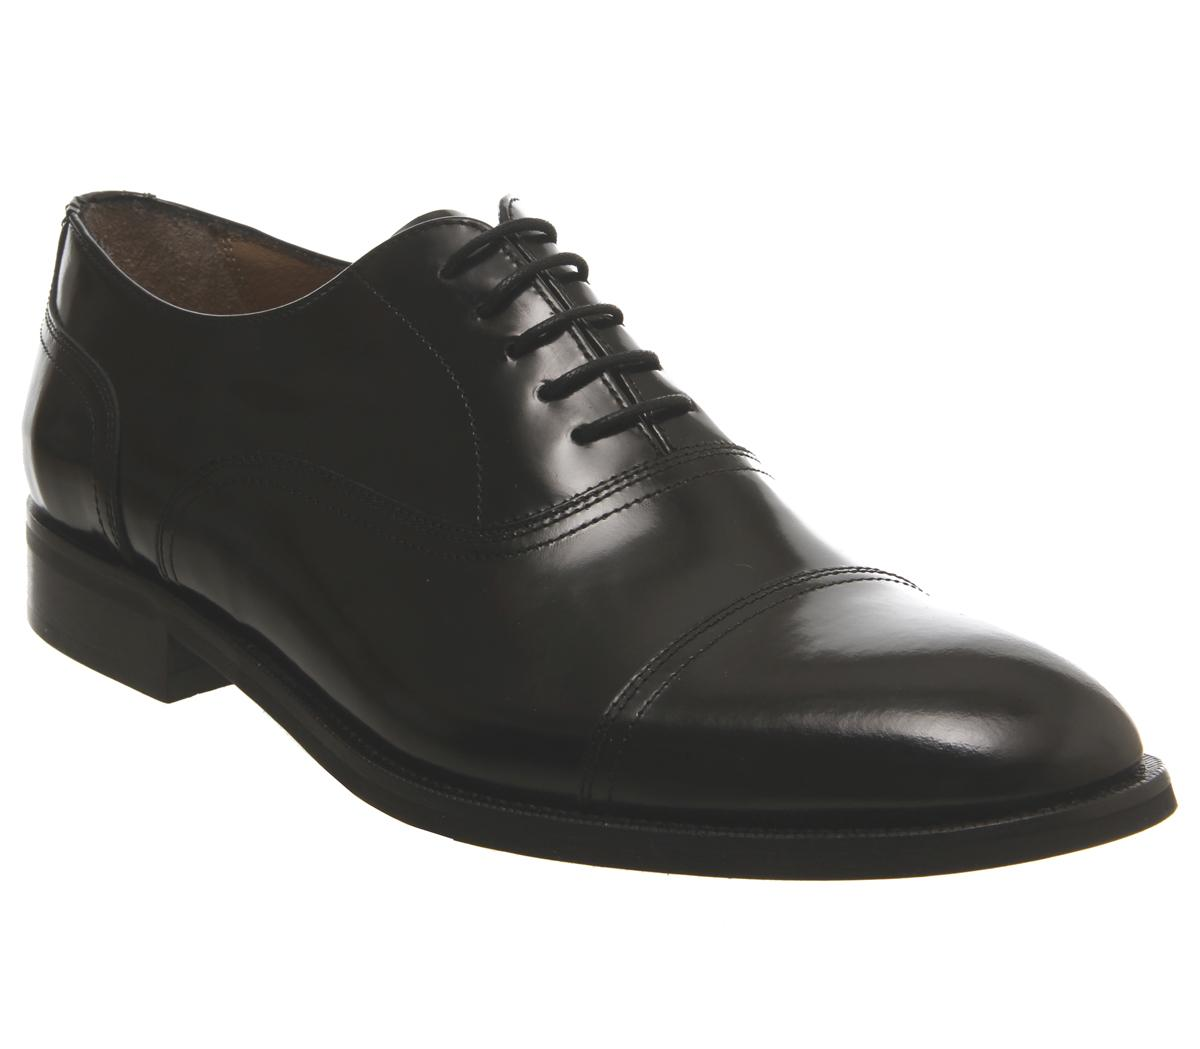 Poste Oxford Shoes